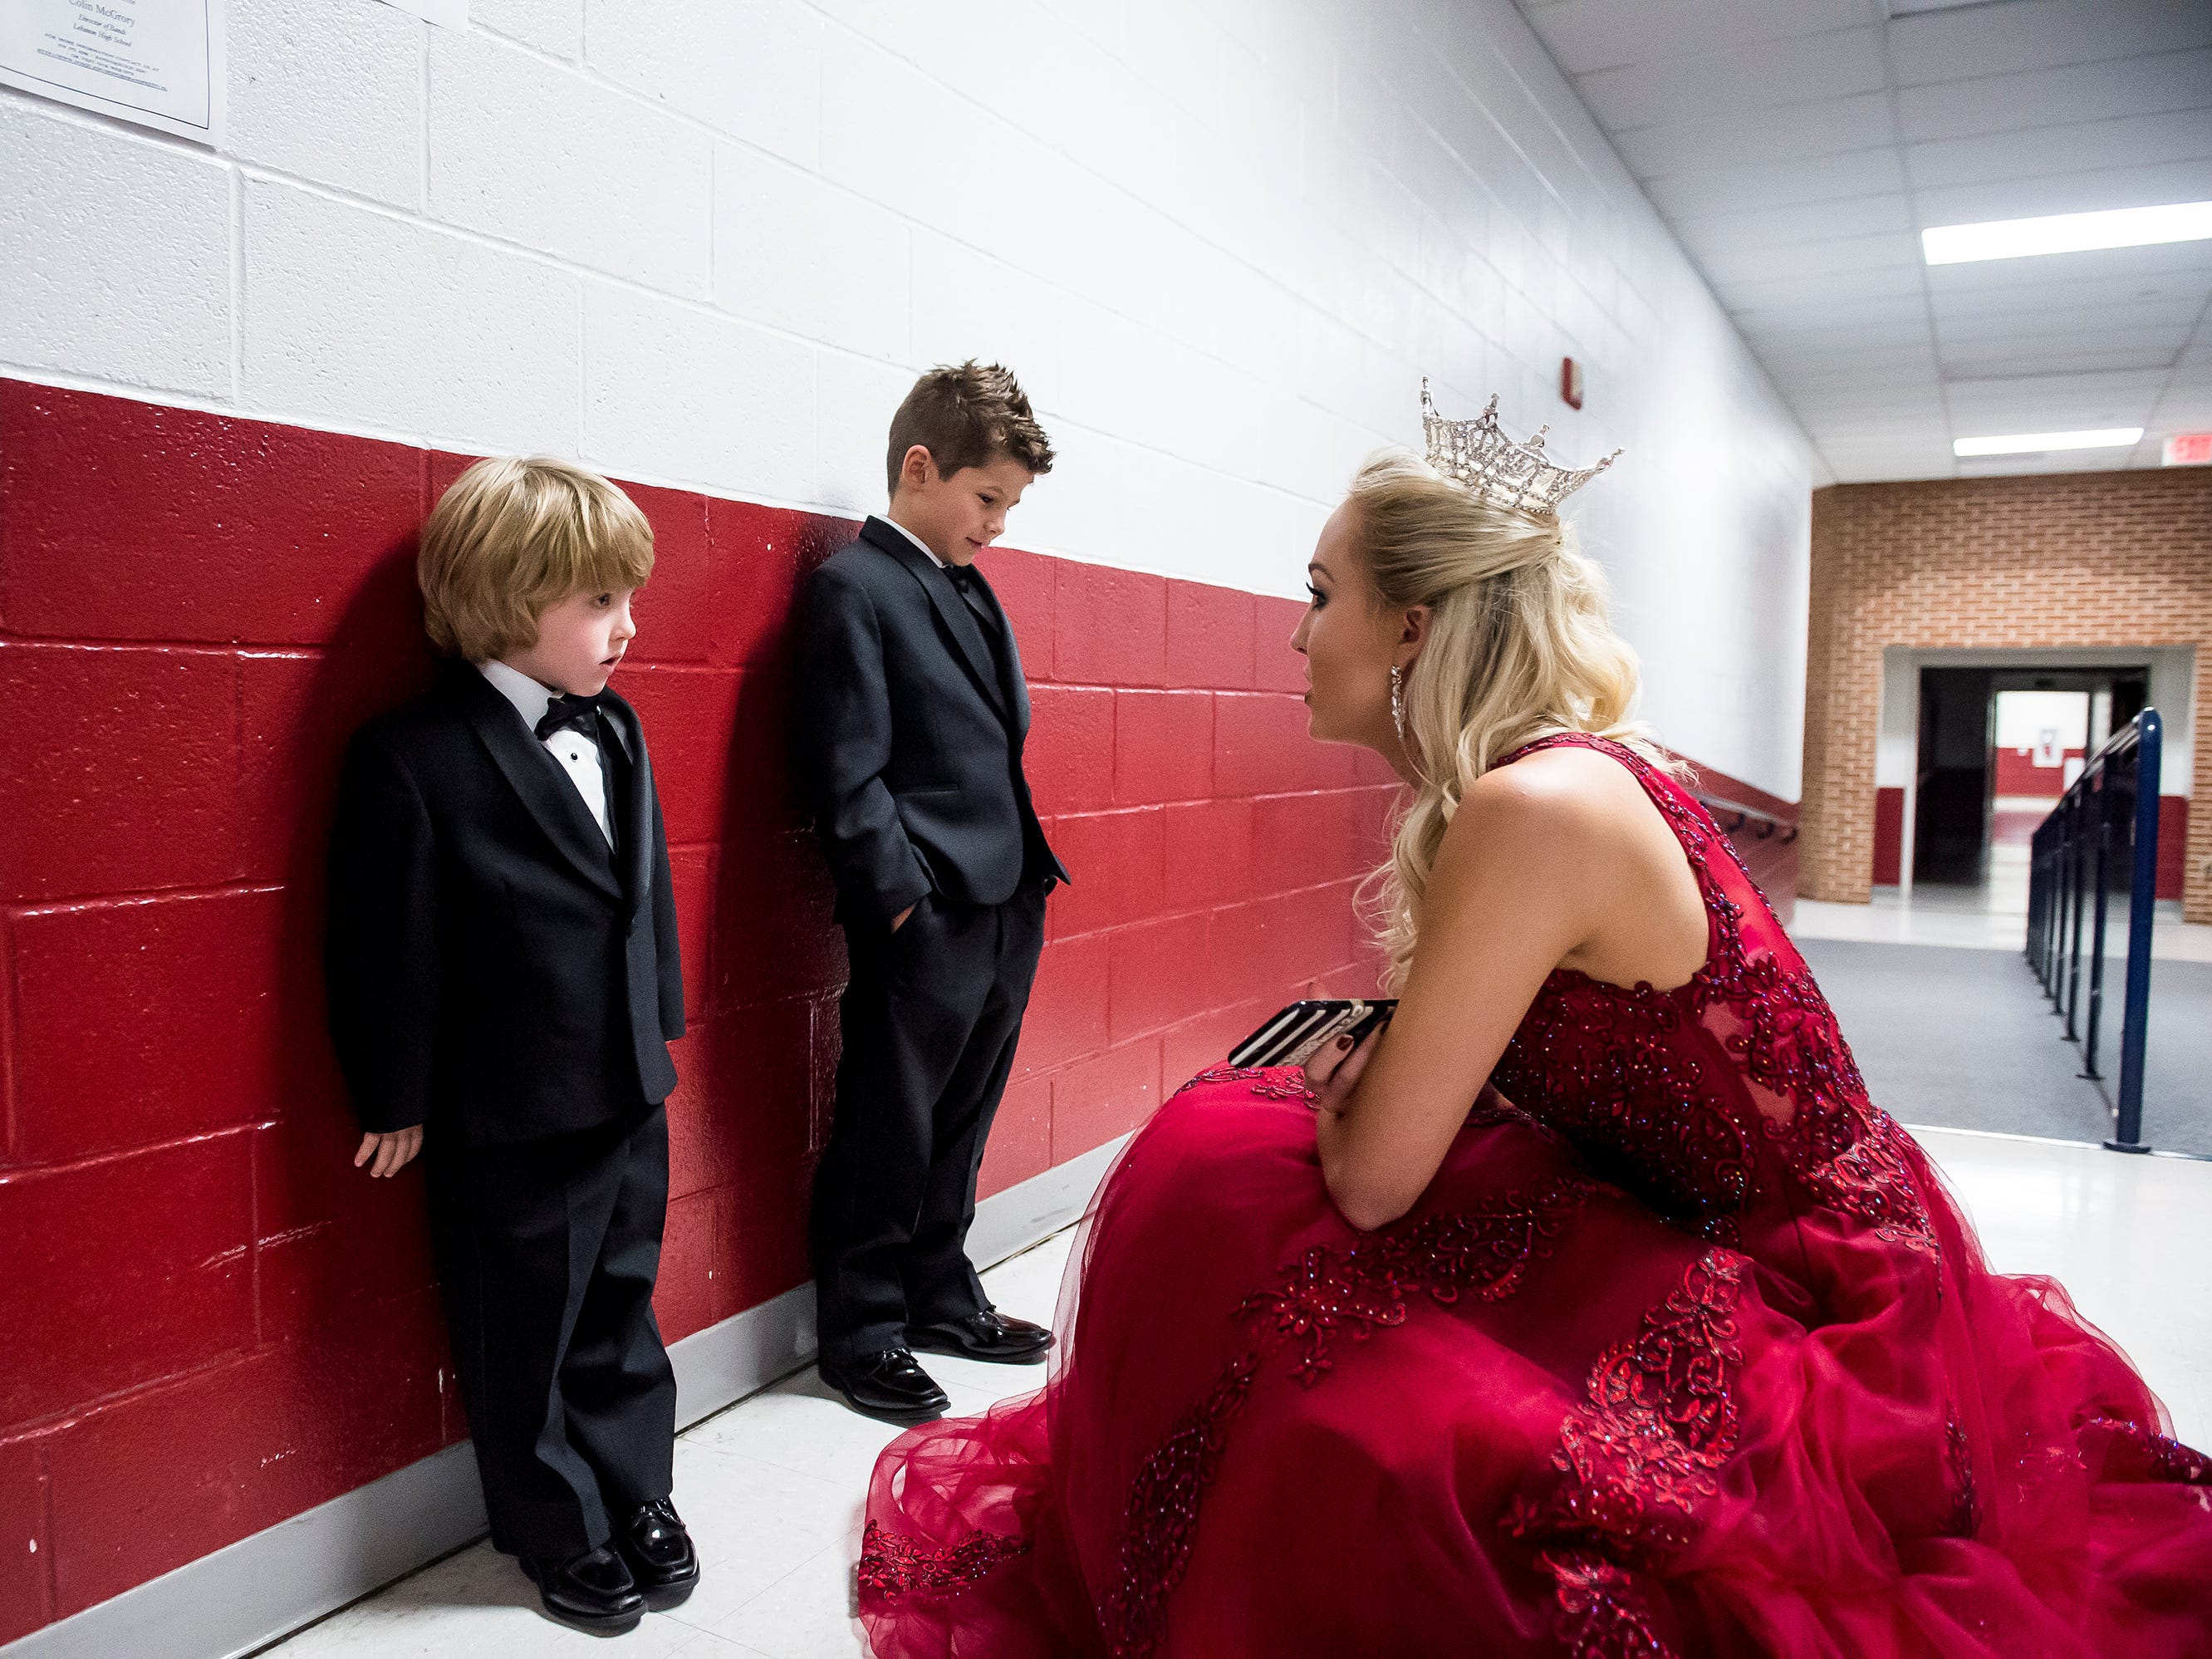 Miss Pennsylvania, Kayla Repasky, talks with Dawson Seigmand, 4, left, and Liam Colvin, 6, during an intermission at the 50th Miss Hanover Area pageant at New Oxford High School on Monday, October 22, 2018.